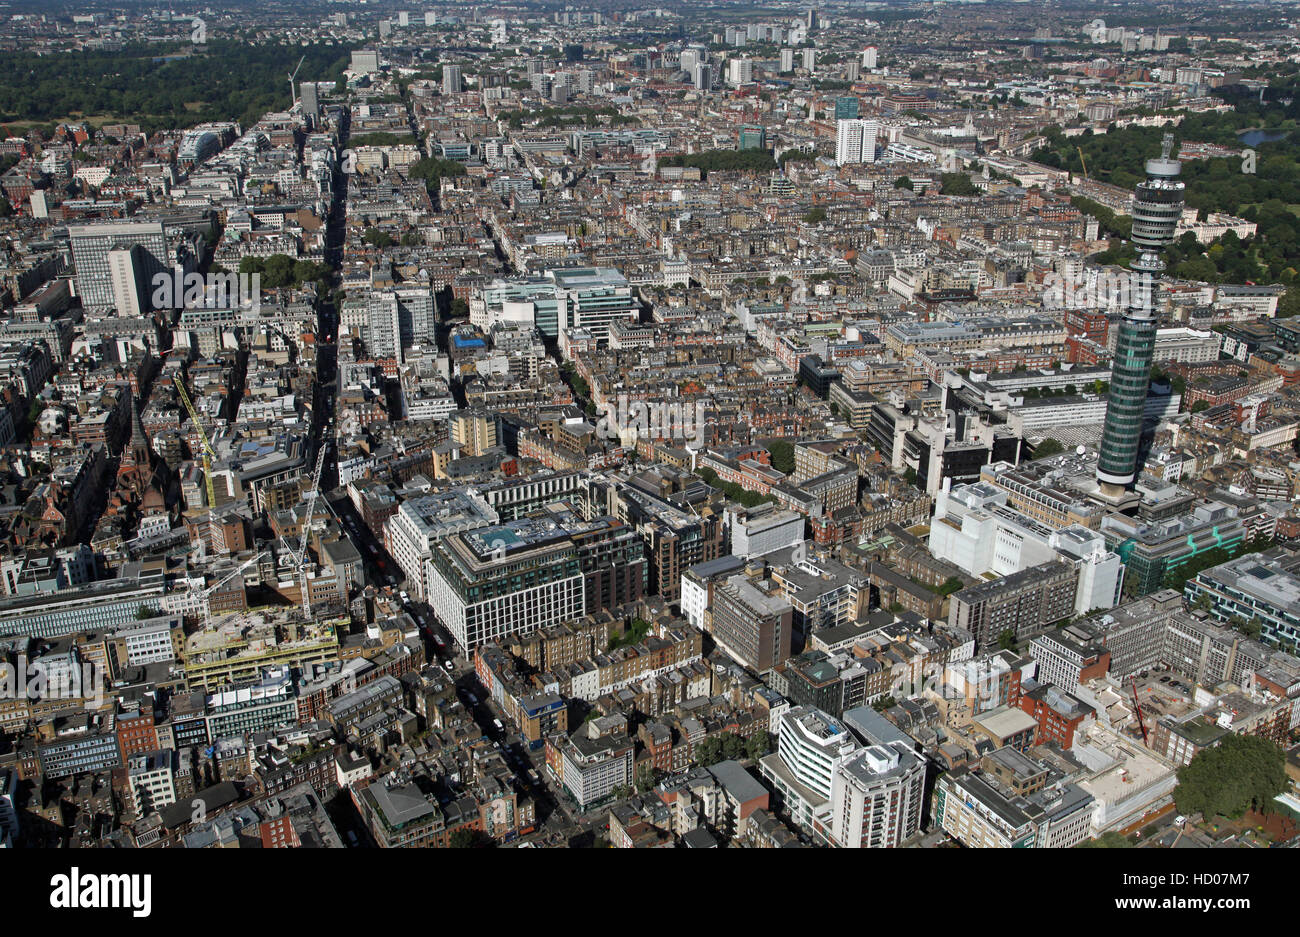 aerial view of the Fitzrovia district of London looking towards Mayfair, England, UK - Stock Image